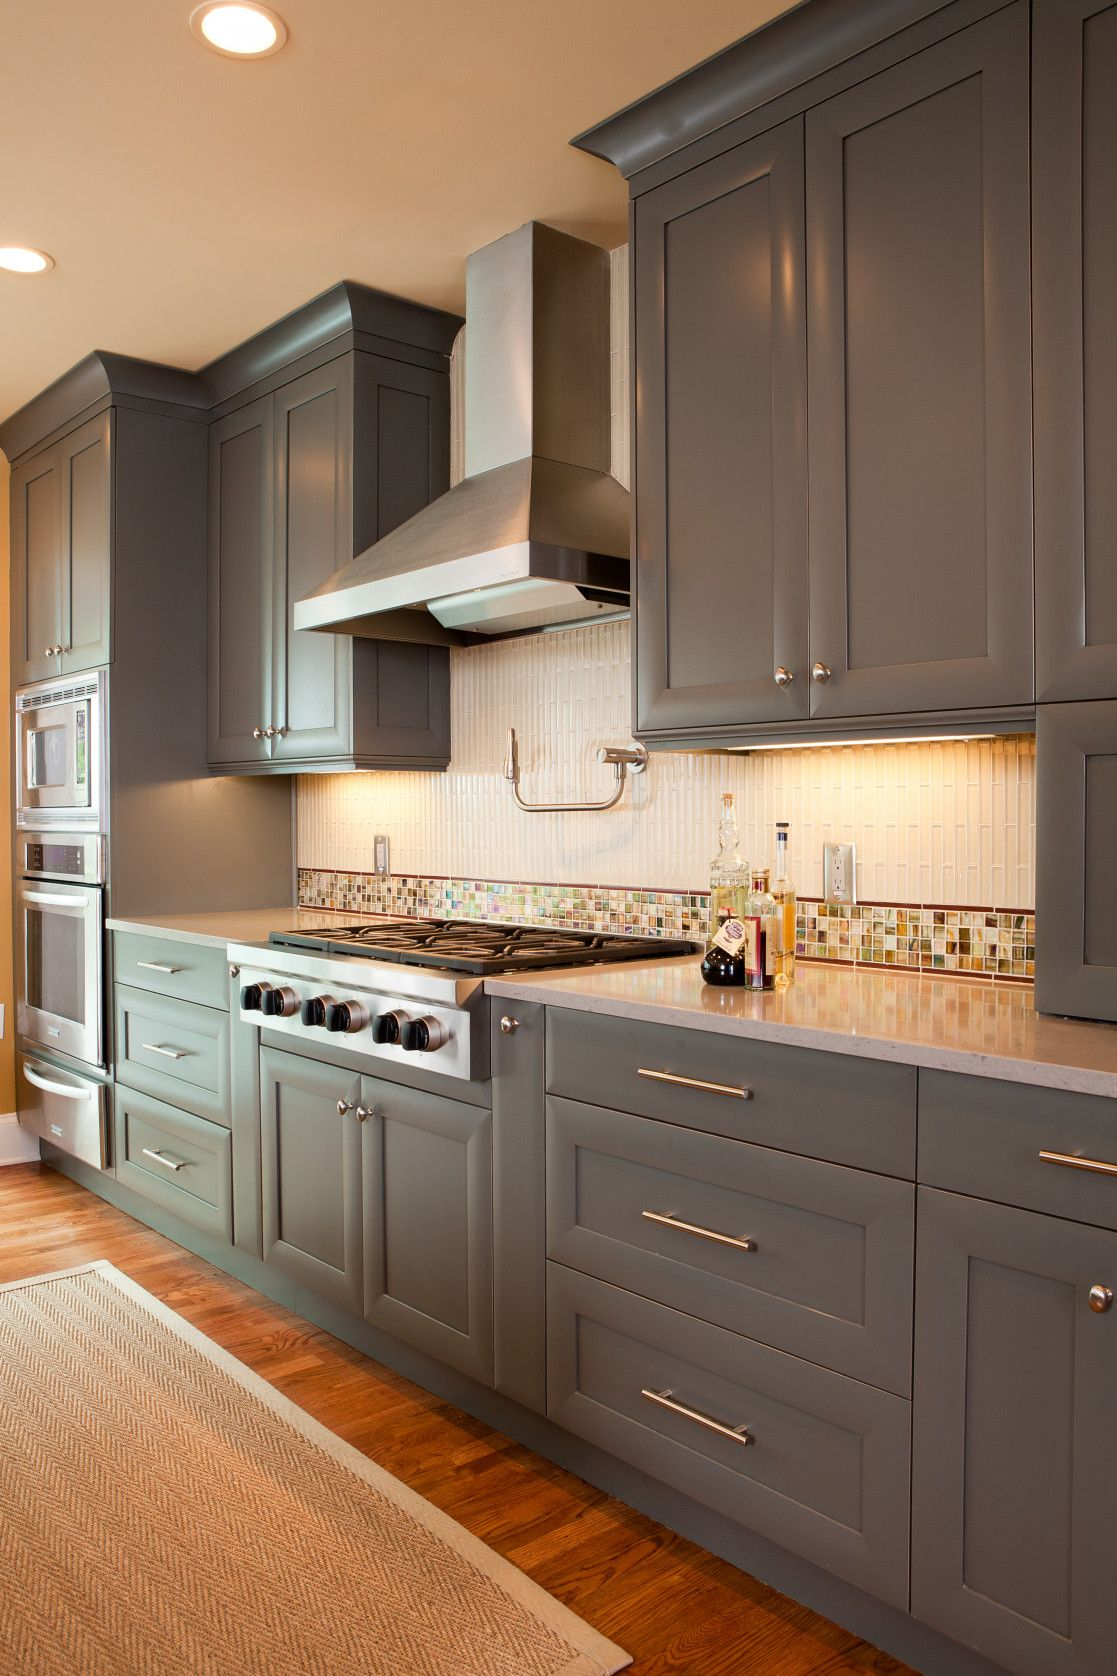 20 Custom Painted Kitchen Cabinets Kitchen Decor Theme Ideas Check More At Http Grey Painted Kitchen Kitchen Cabinet Styles Kitchen Cabinets Painted Grey